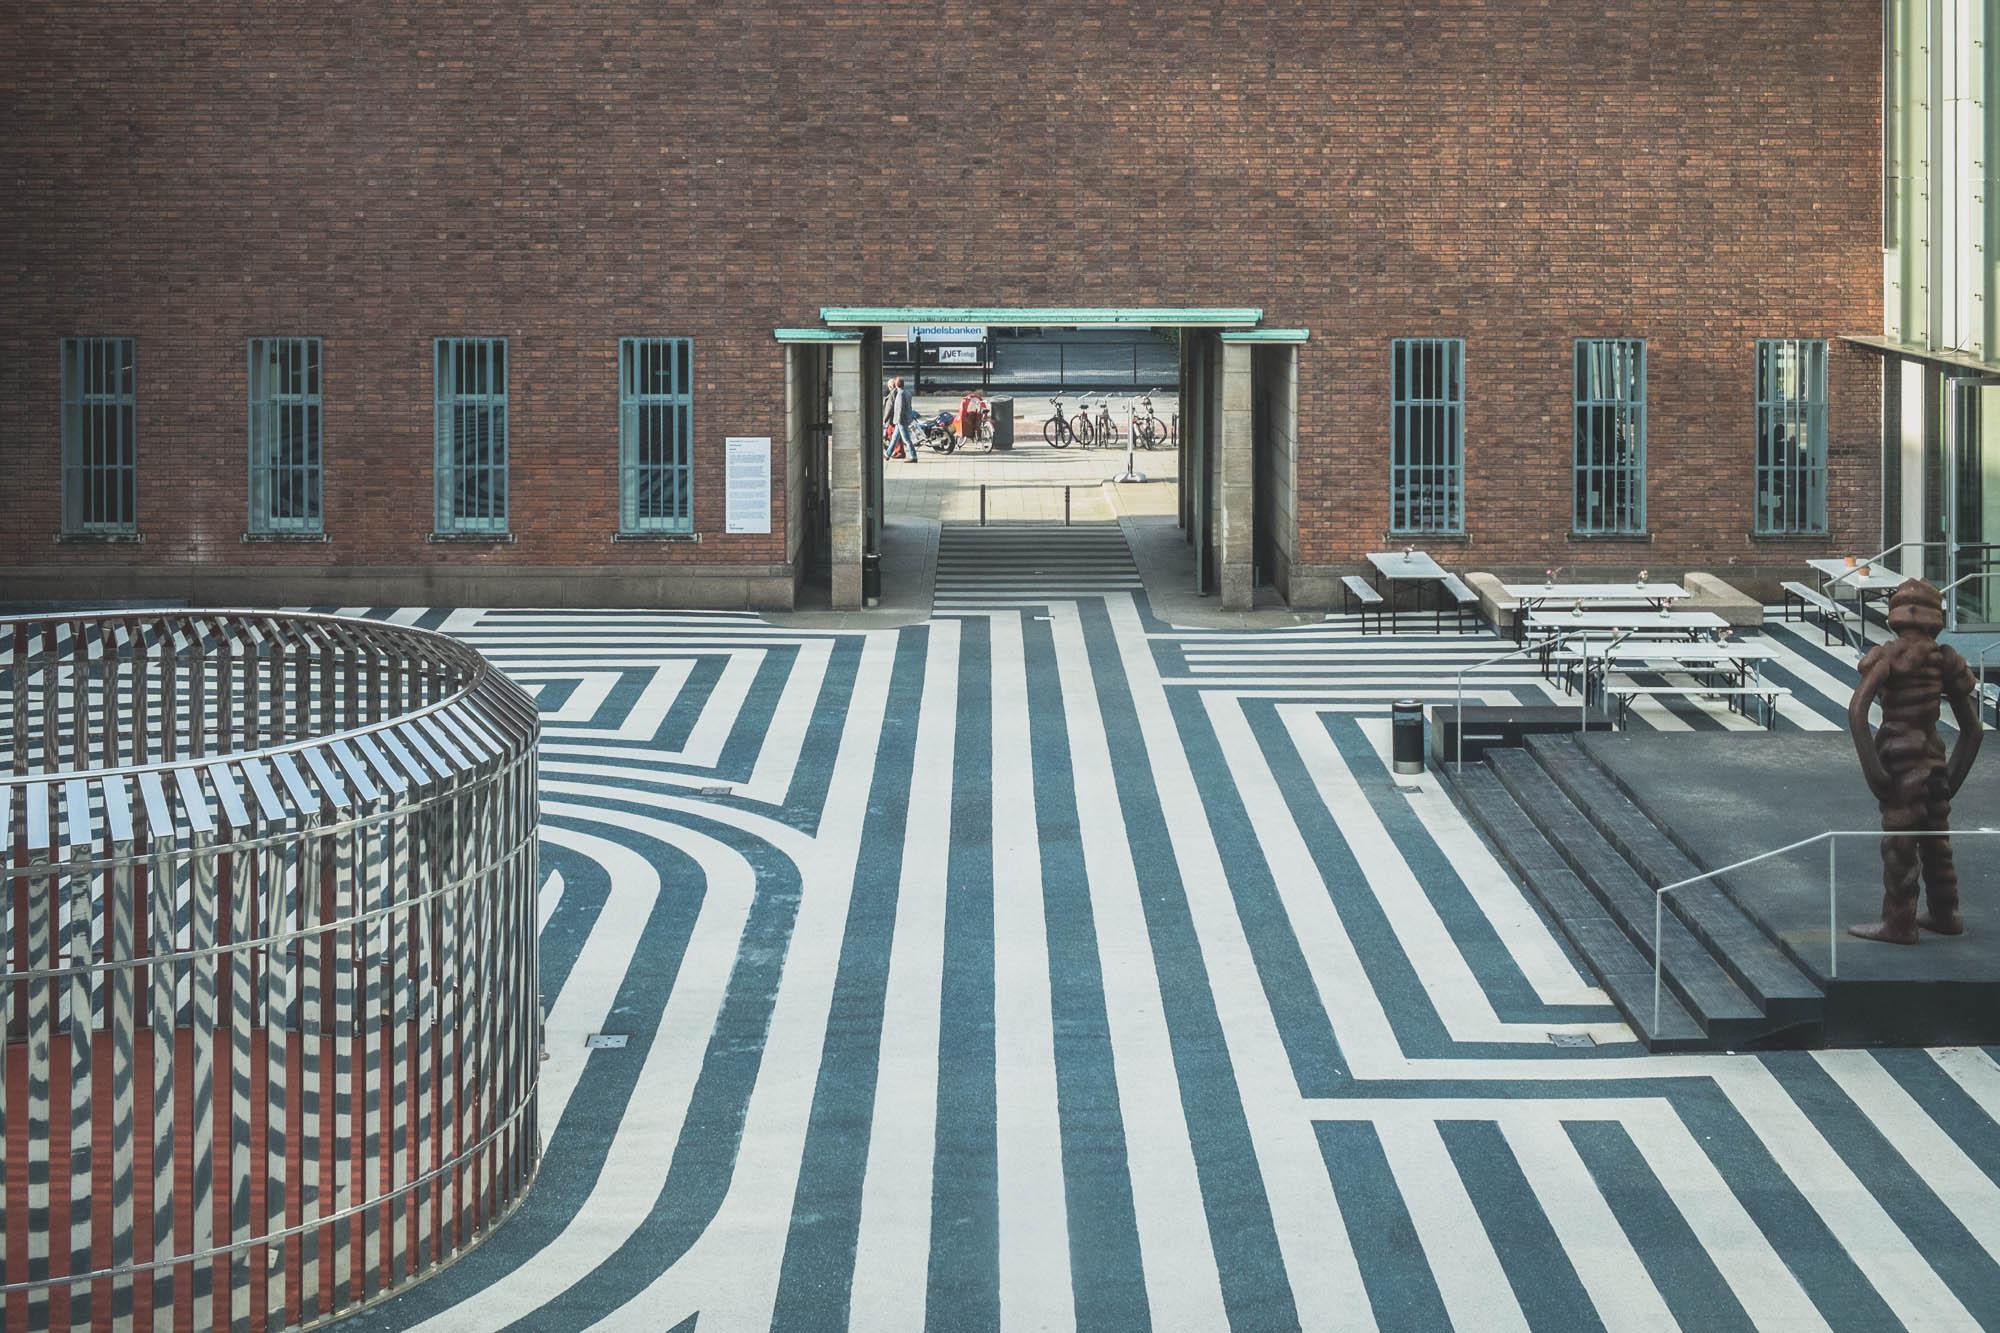 Entrance courtyard with the noticeable pavement pattern.